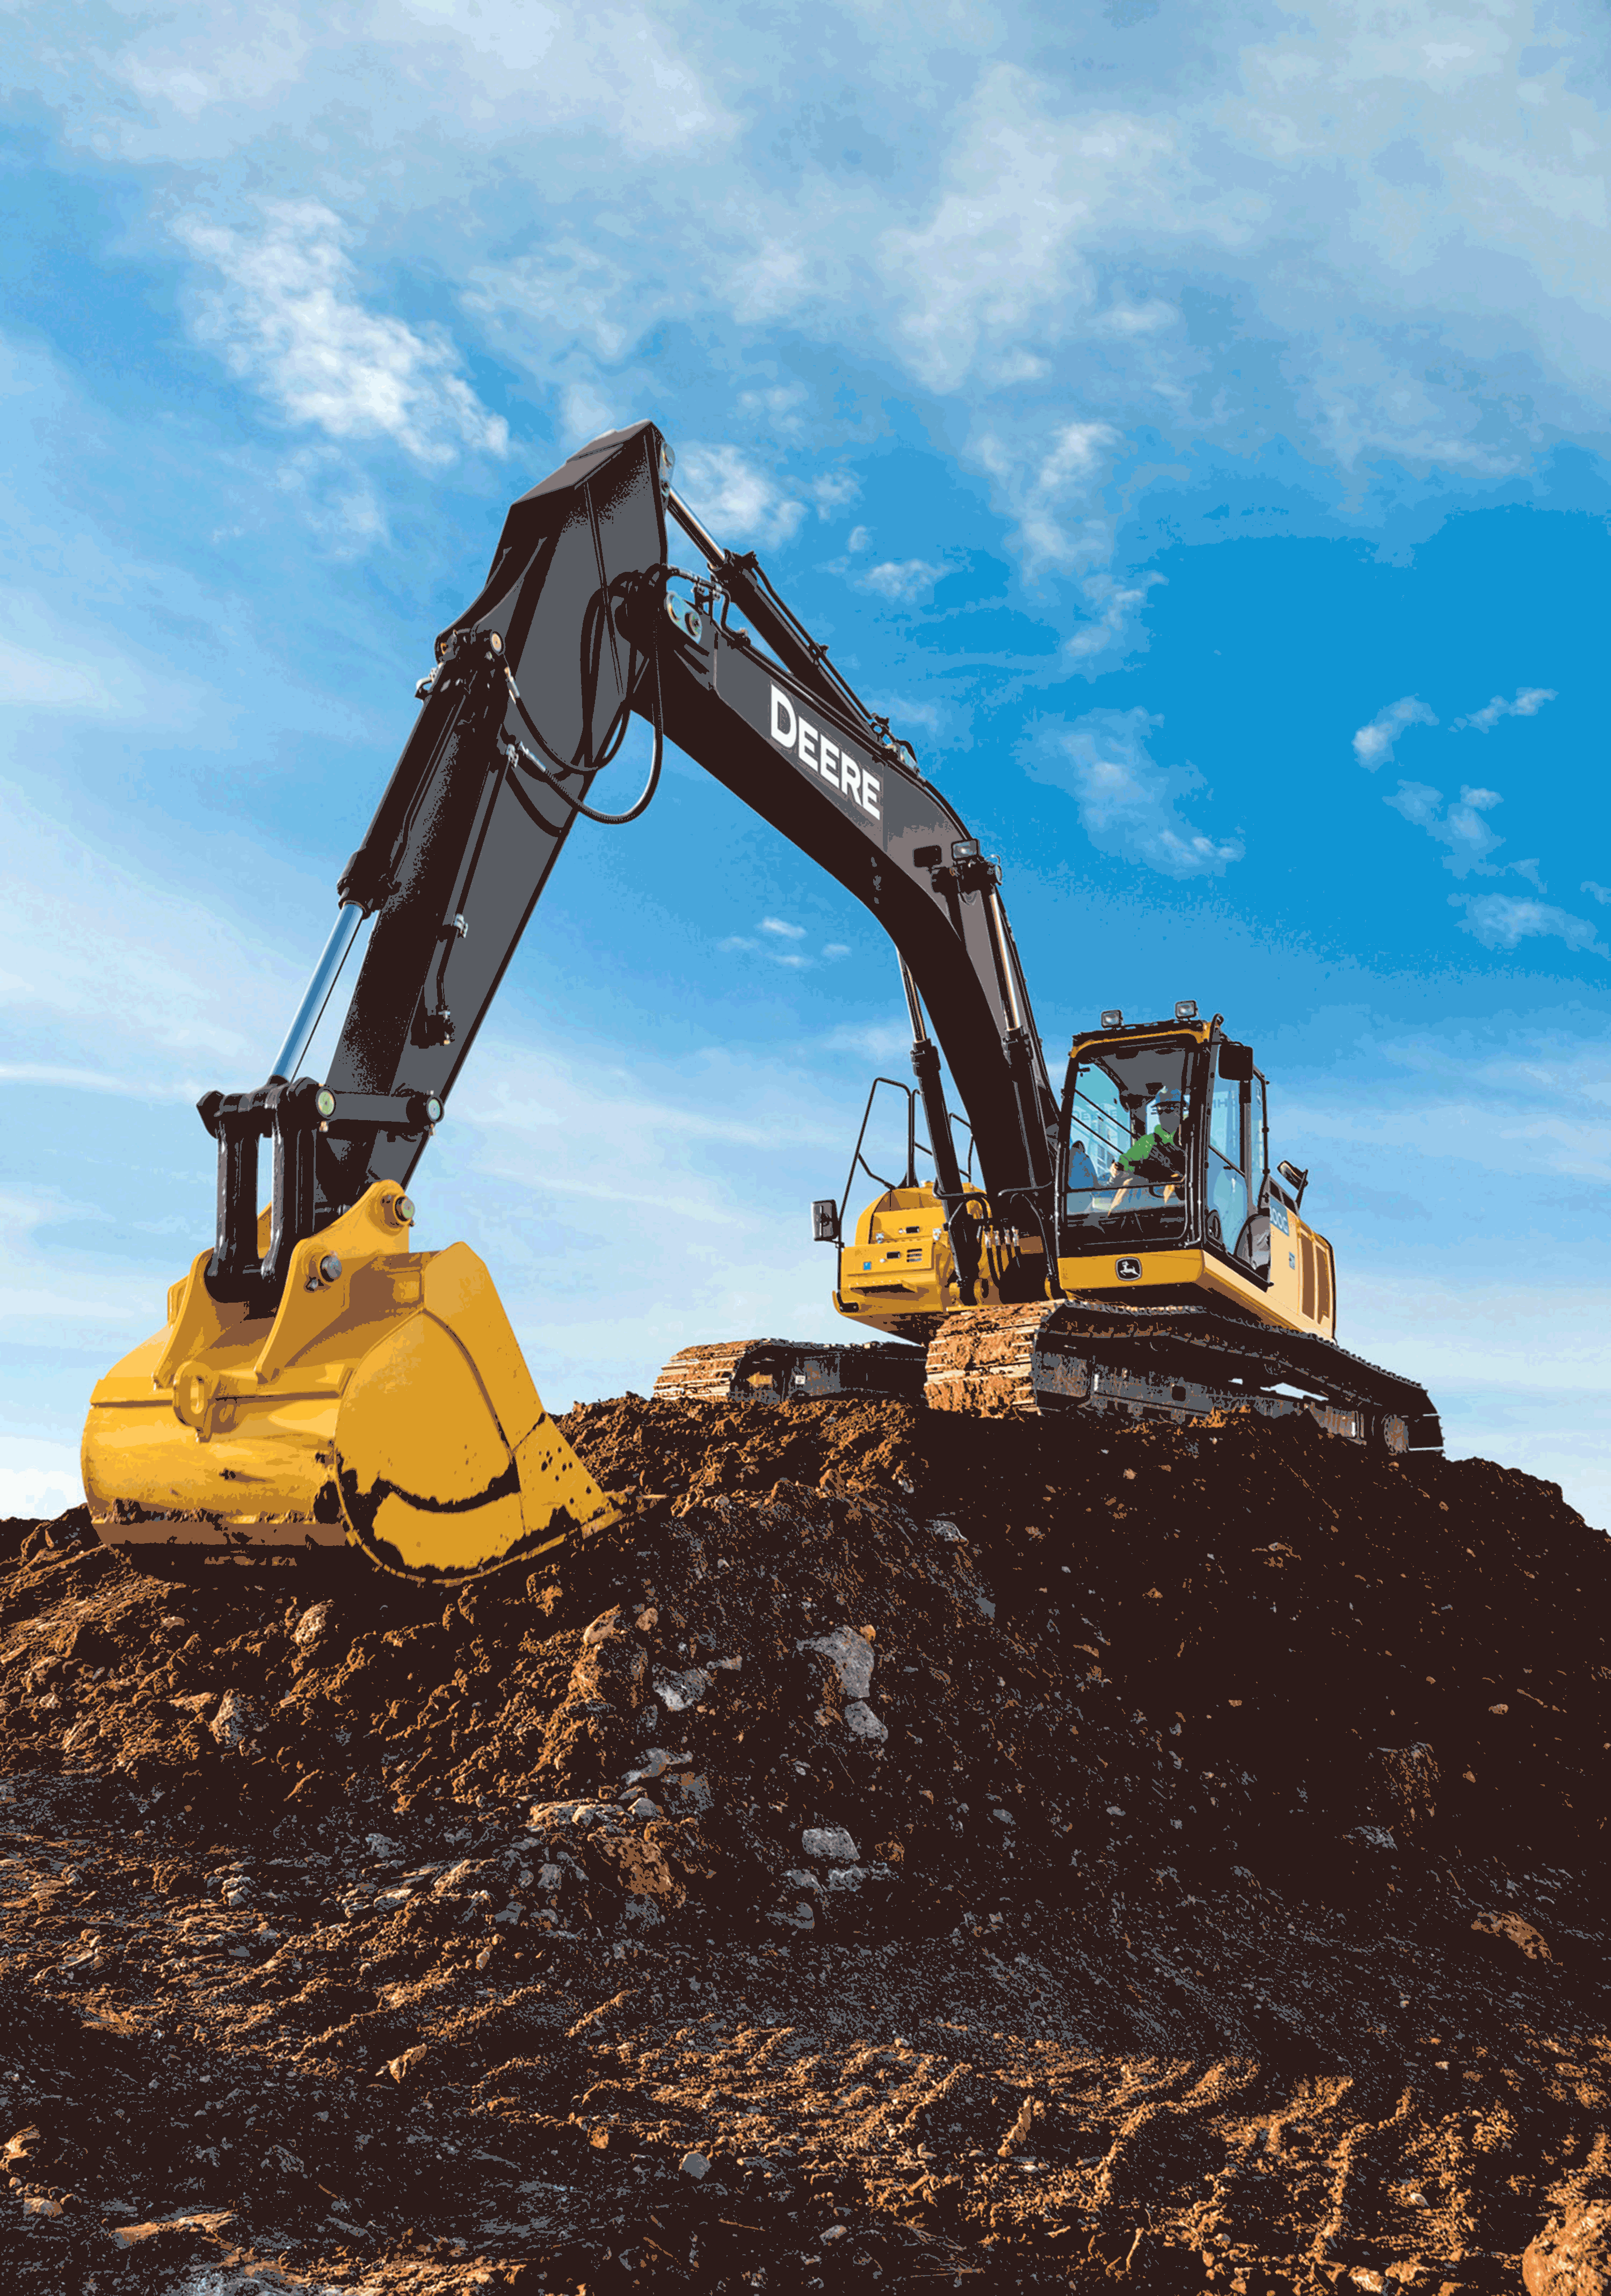 John Deere Adds 300G LC to Final Tier 4 G-Series Excavator Lineup